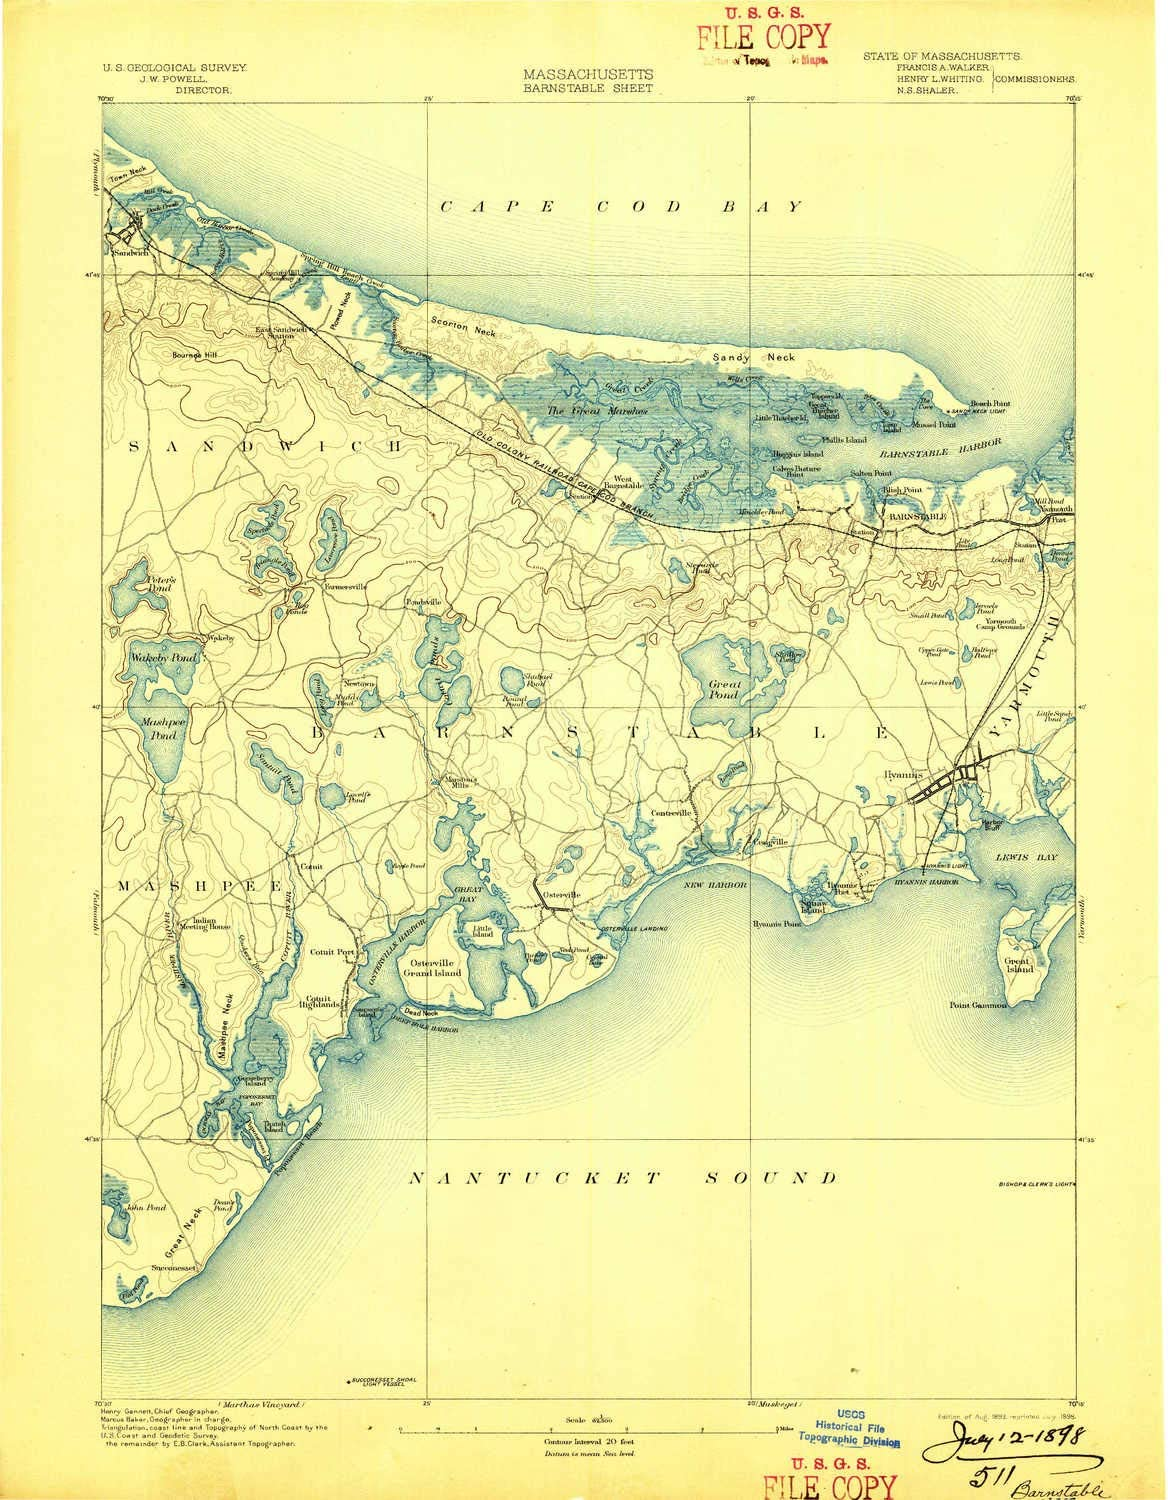 YellowMaps Barnstable MA topo map Be super welcome 1:62500 15 Sale Scale Minute X